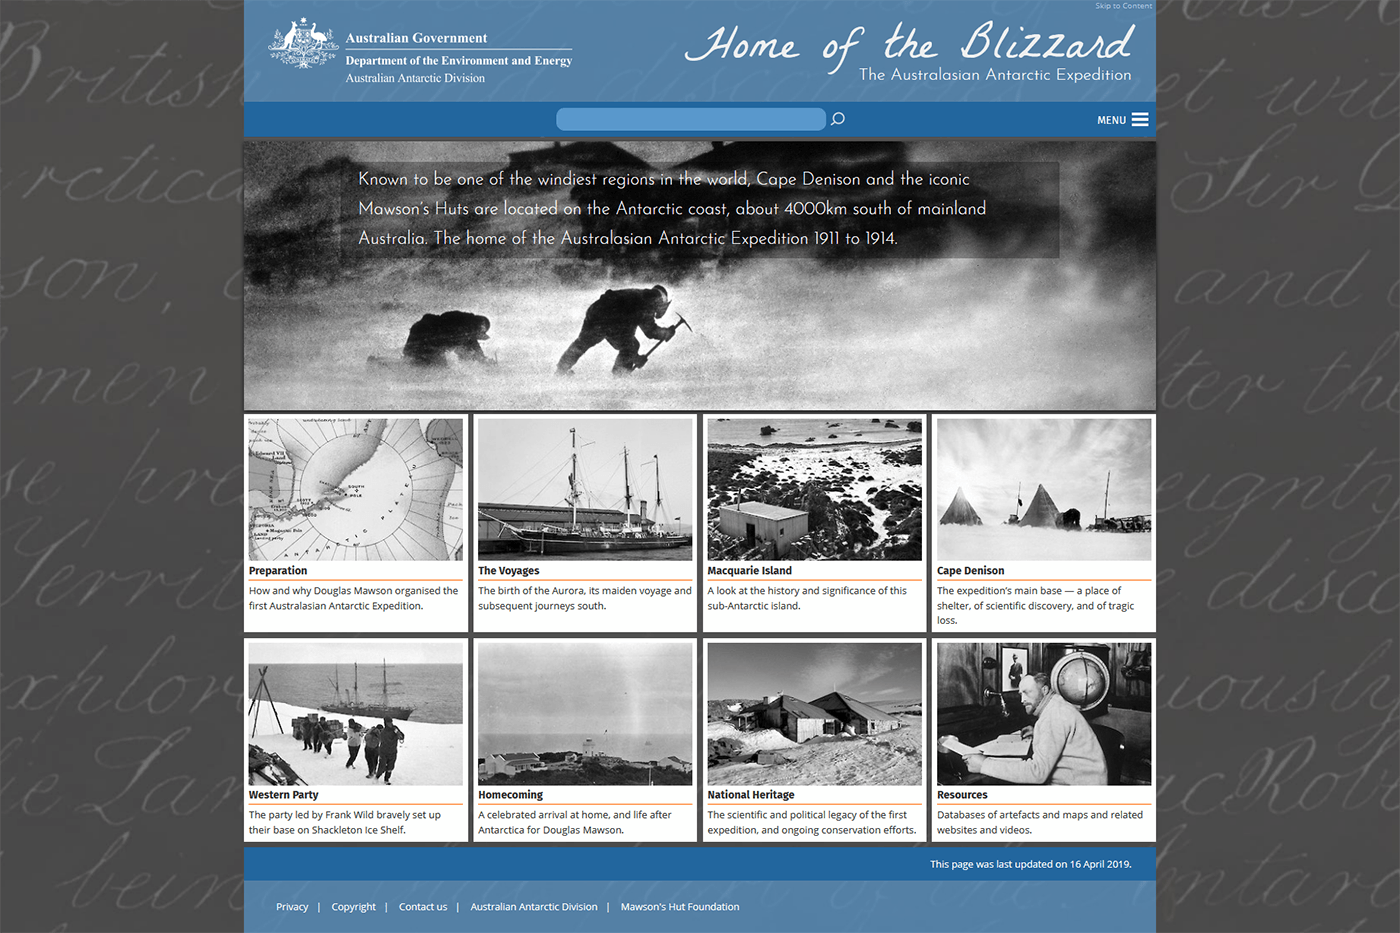 Home of the Blizzard - The Australasian Antarctic Expedition